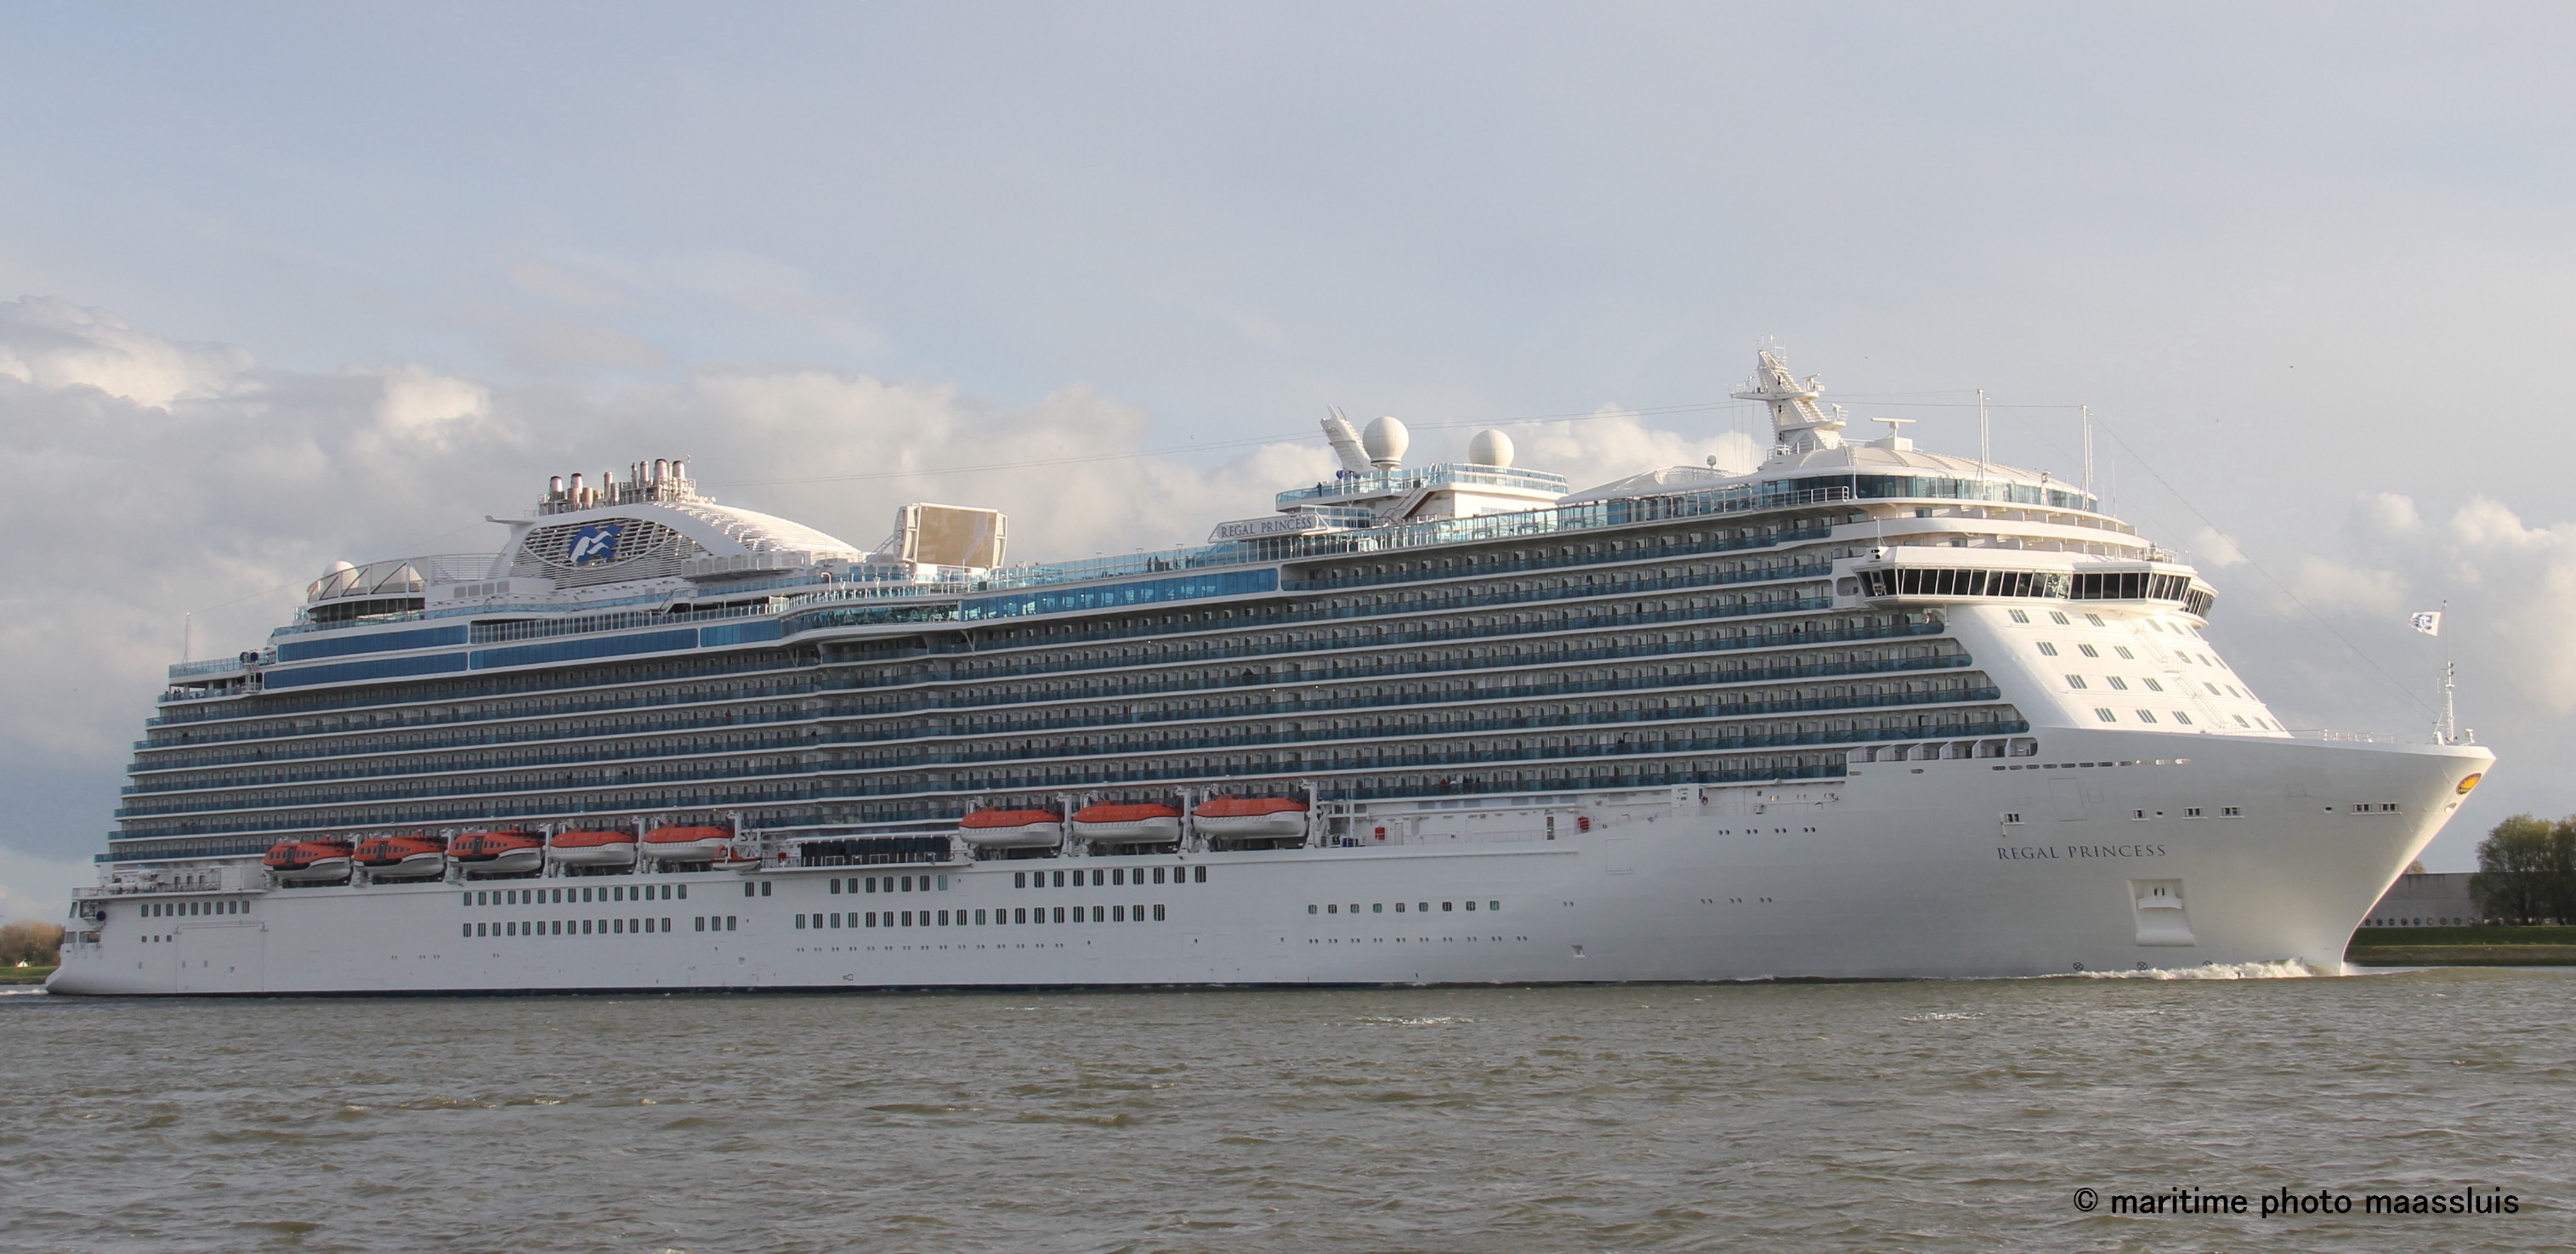 regalprincess02.jpg